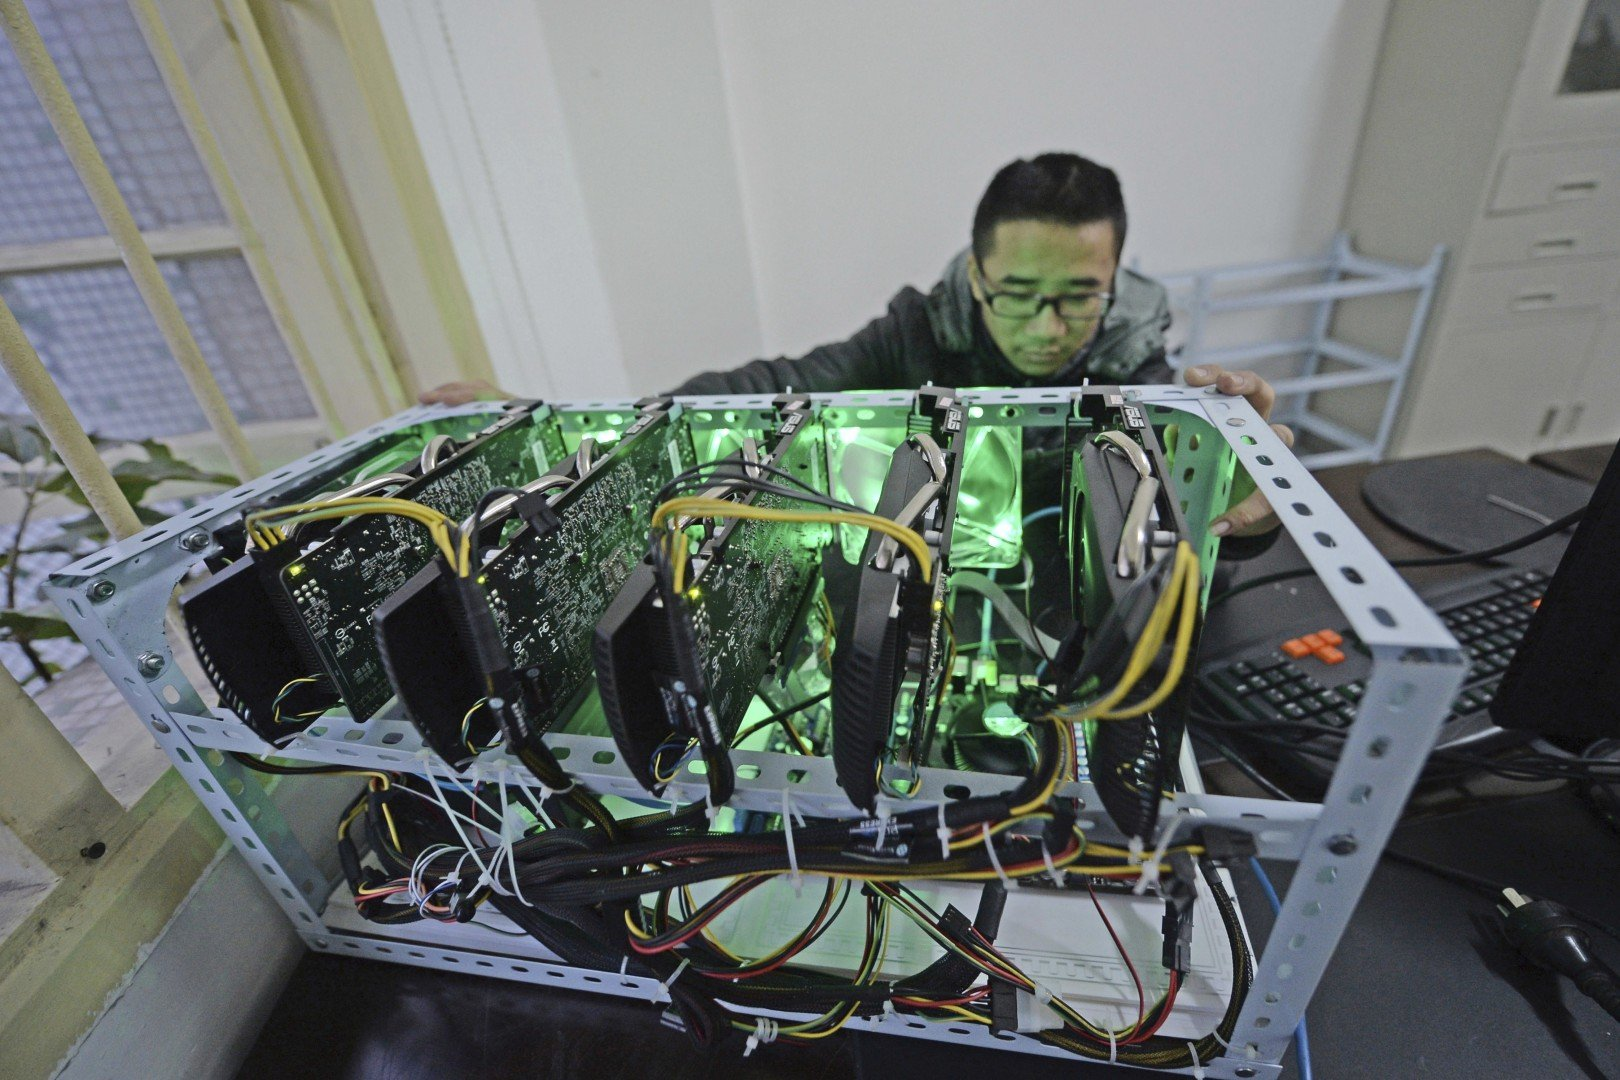 How to do bitcoin mining on pc